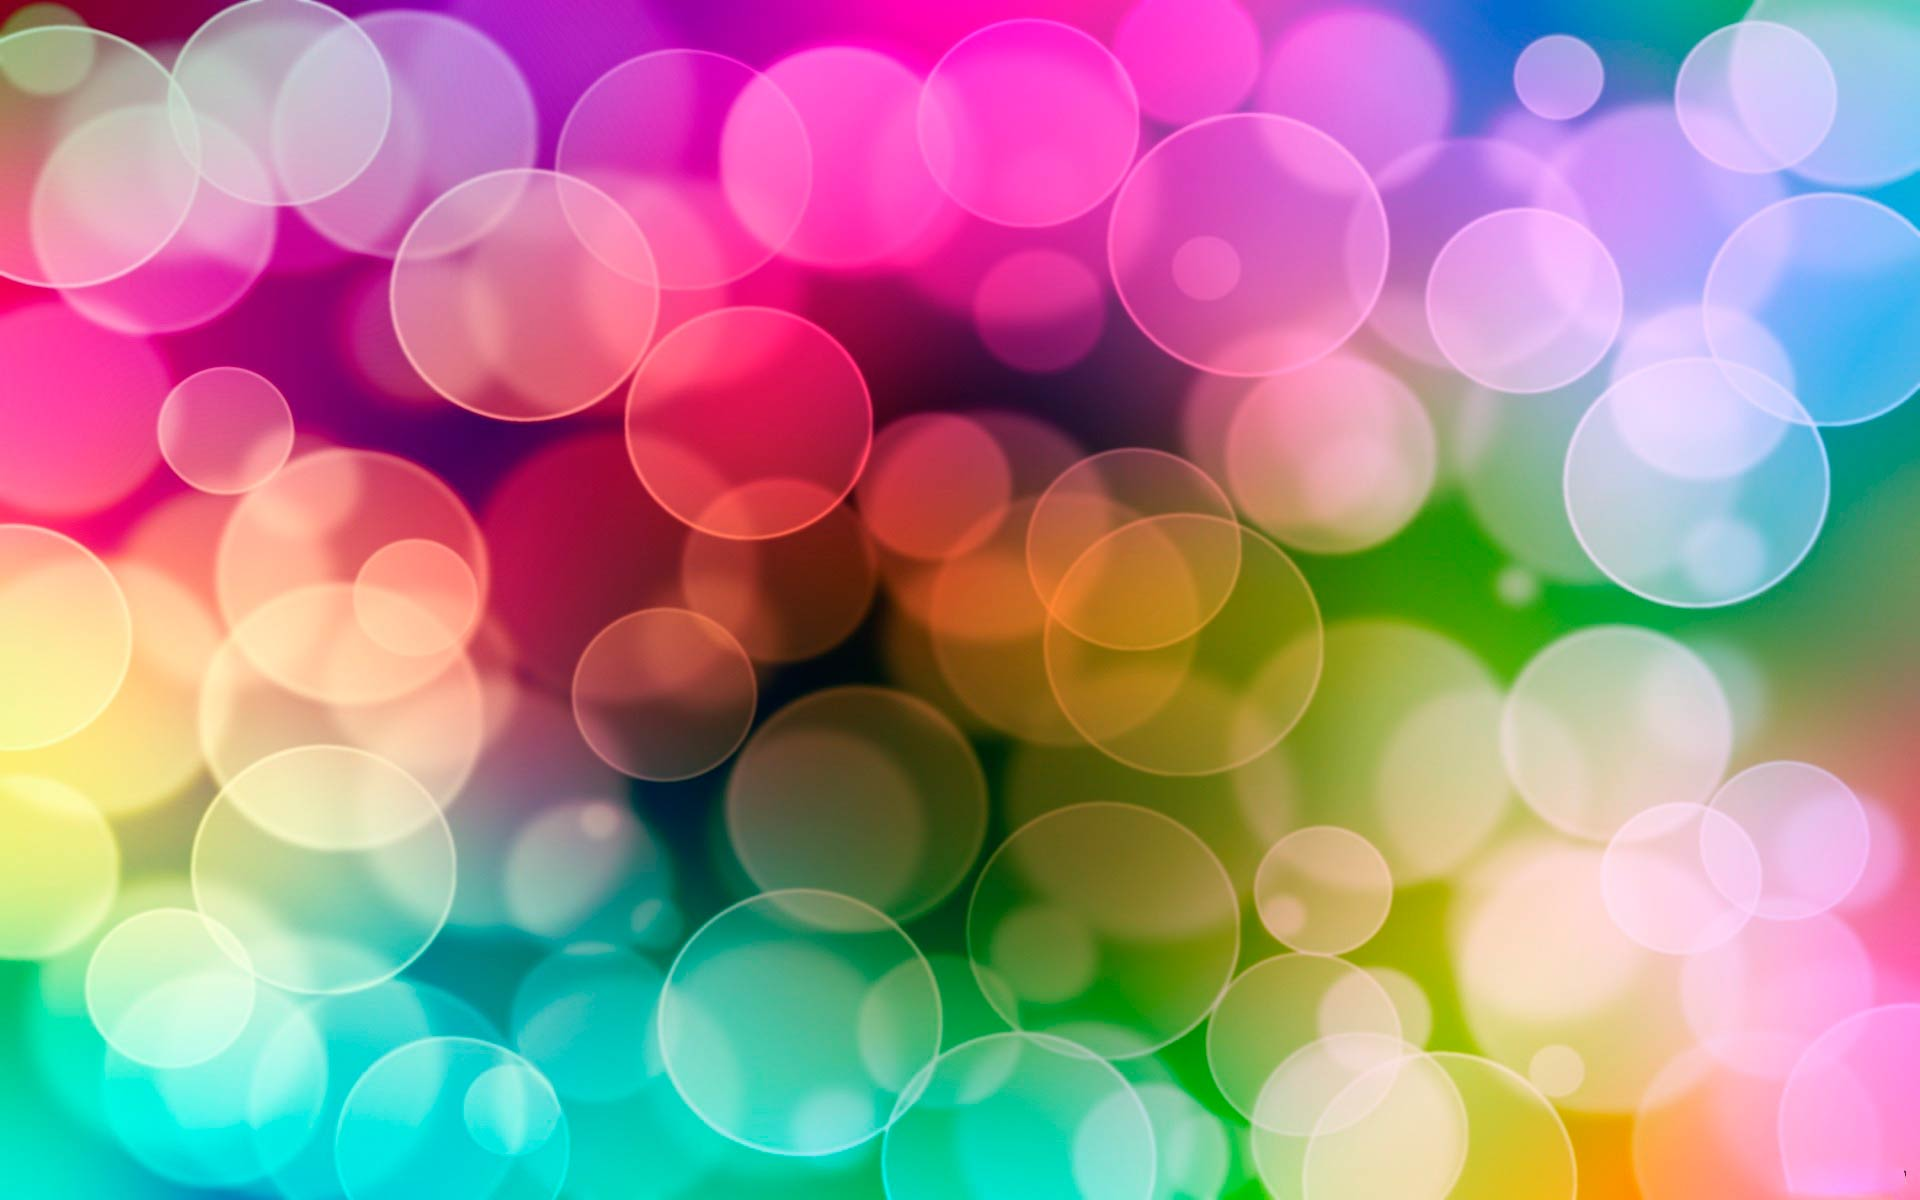 Wallpaper Colorful Abstract